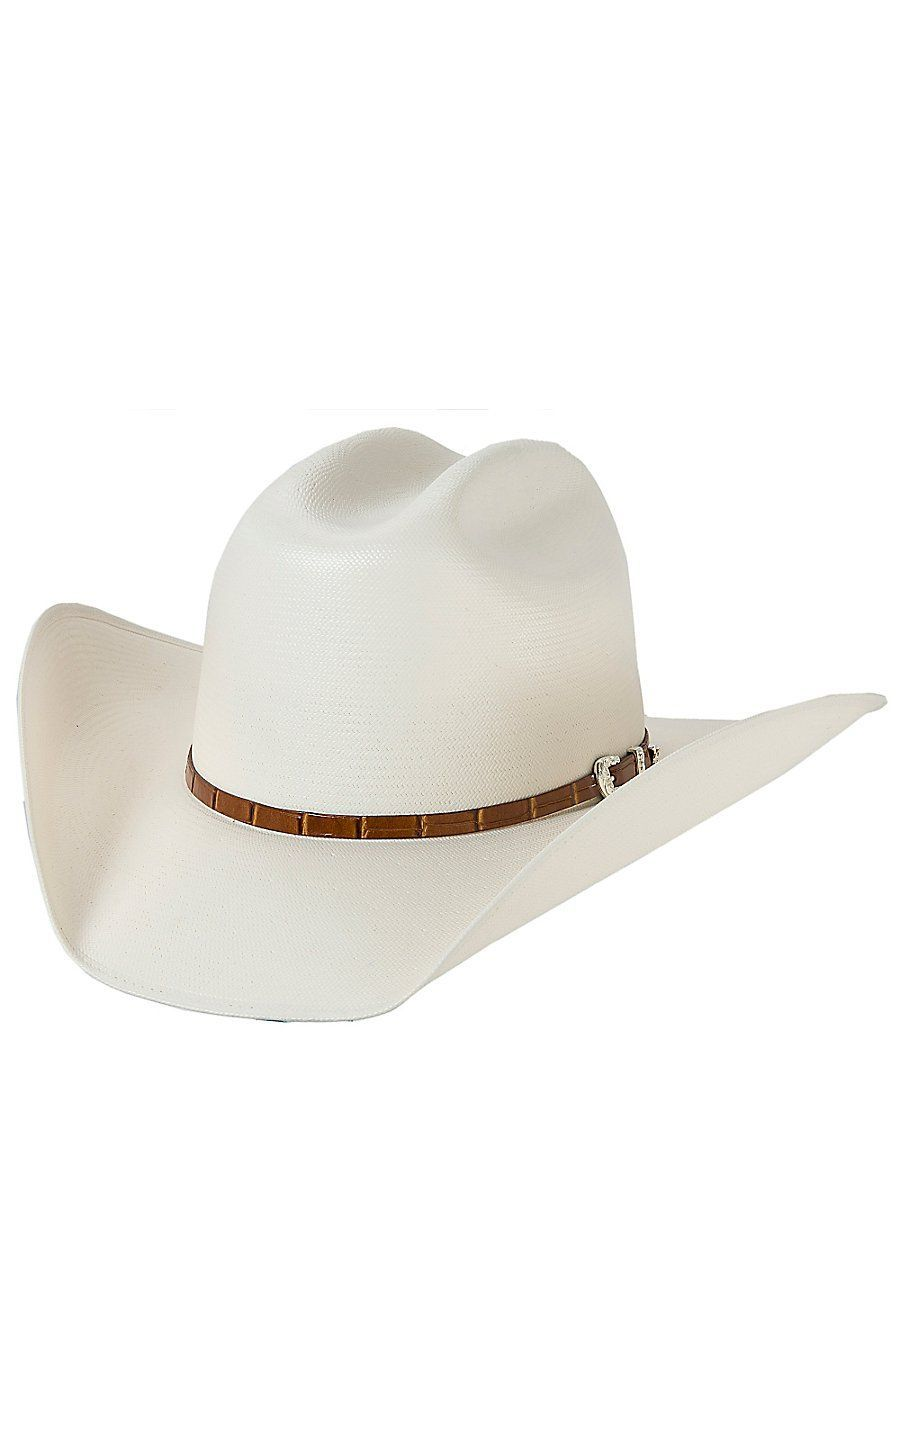 Stetson Stallion 100X Maximo Straw Cowboy Hat  ThingstoWear 90285be7995